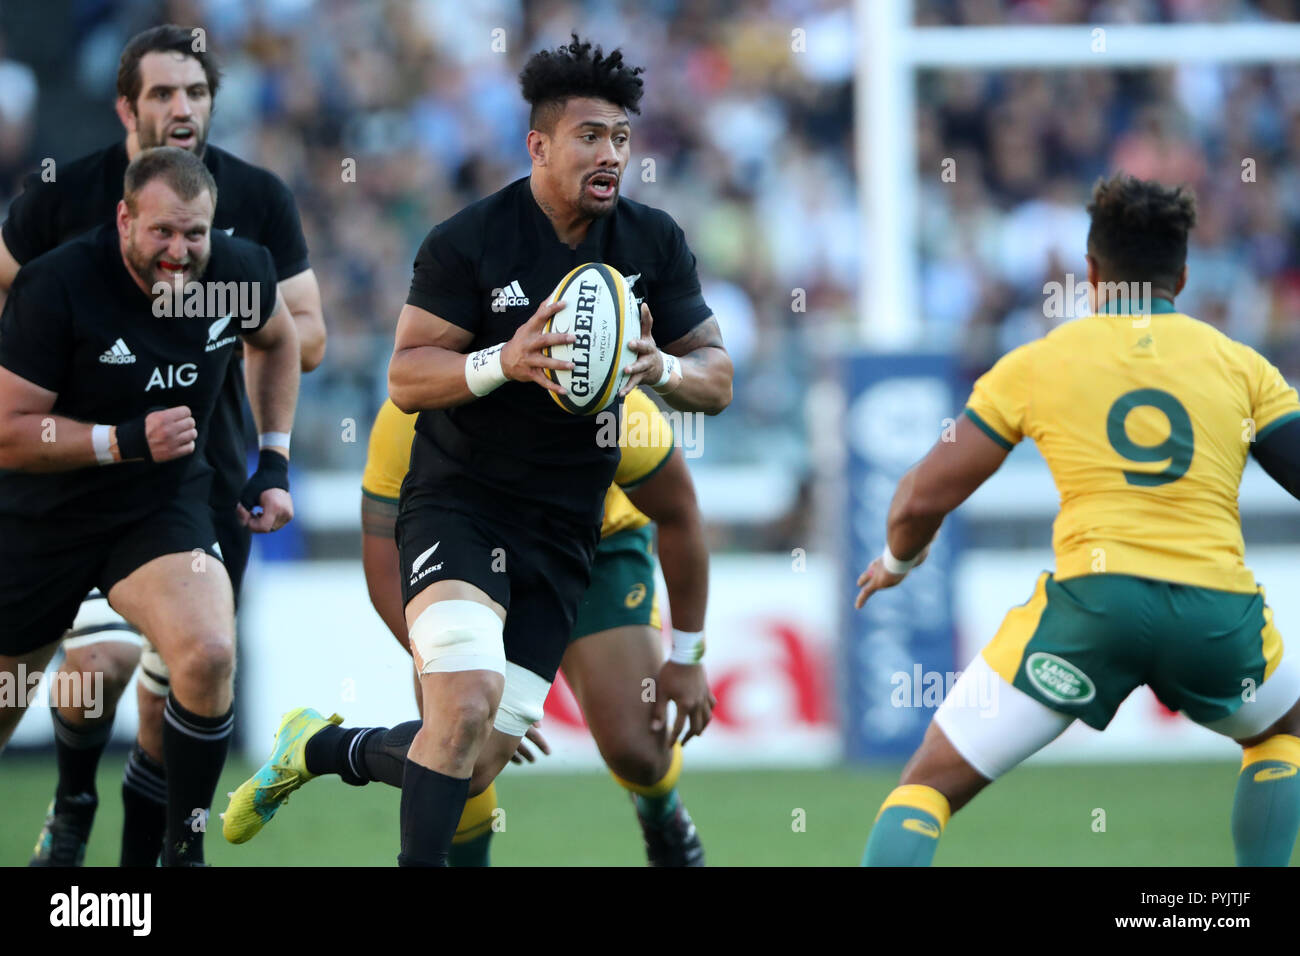 Yokohama, Japan. 27th Oct, 2018. Ardie Savea (NZ) Rugby : 2018 Bledisloe Cup, Rugby test match between New Zealand 37-20 Australia at Nissan Stadium in Yokohama, Japan . Credit: AFLO/Alamy Live News - Stock Image